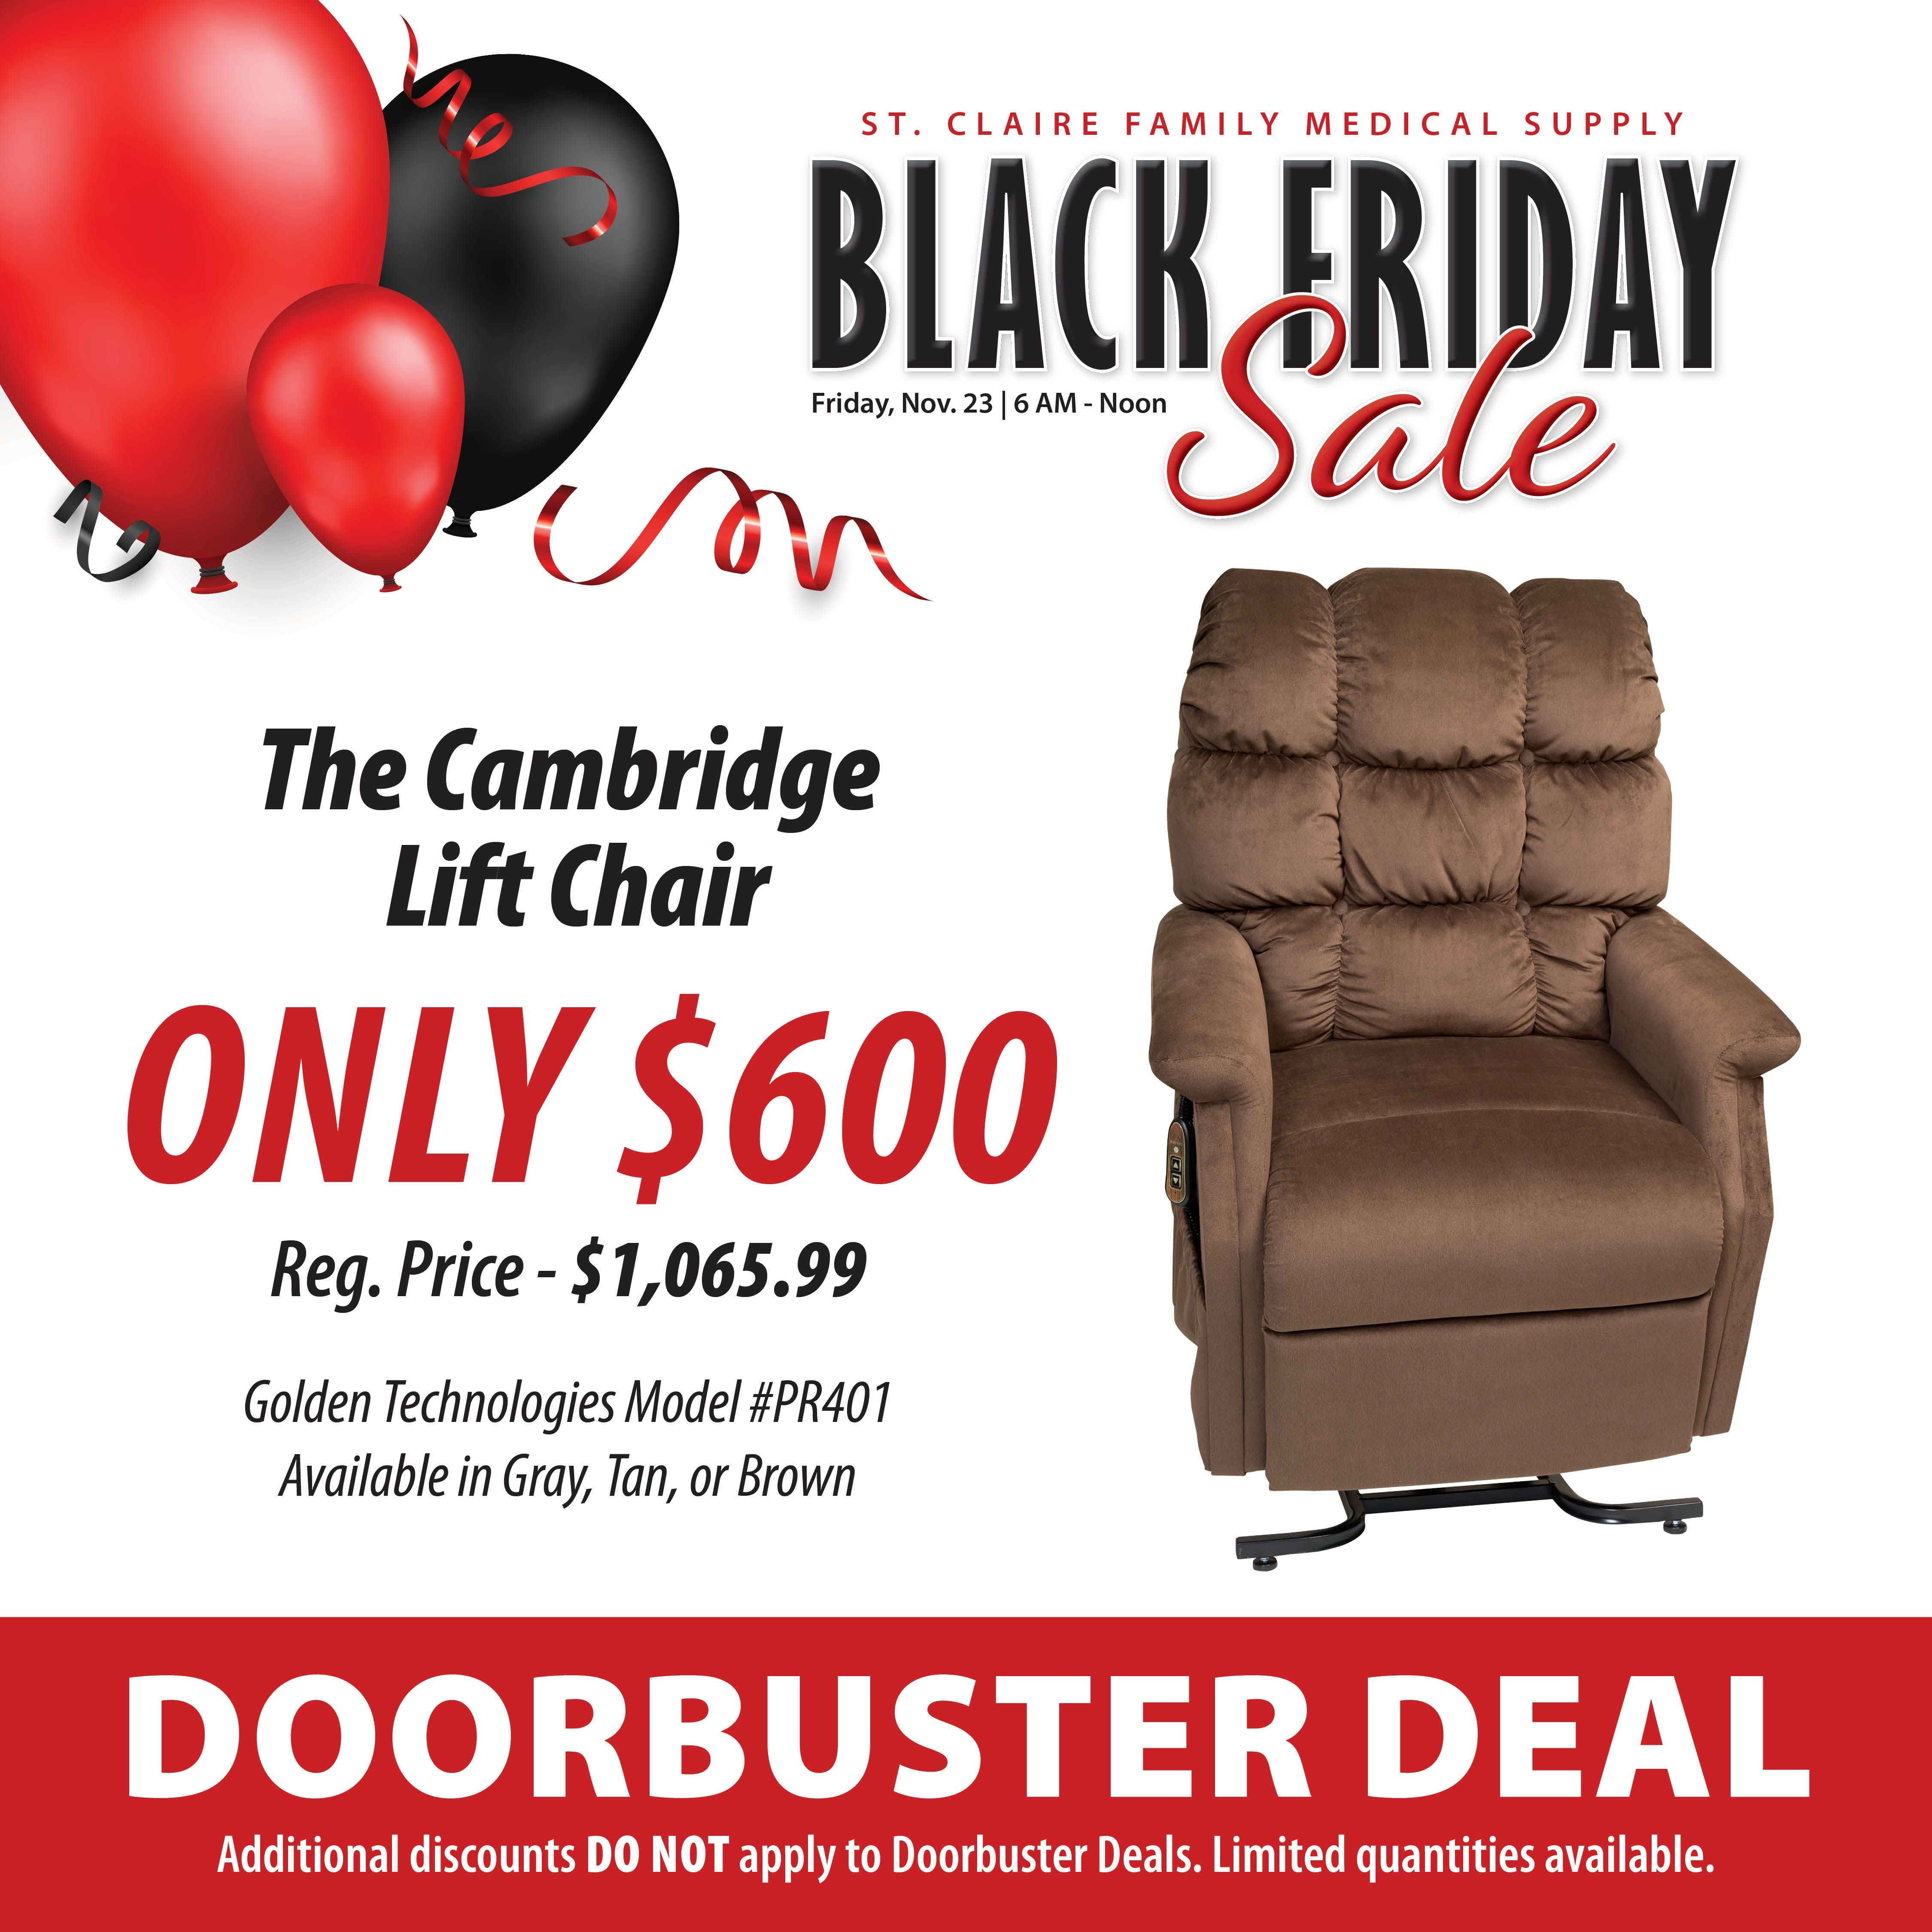 Check out this great doorbuster deal on the cambridge lift